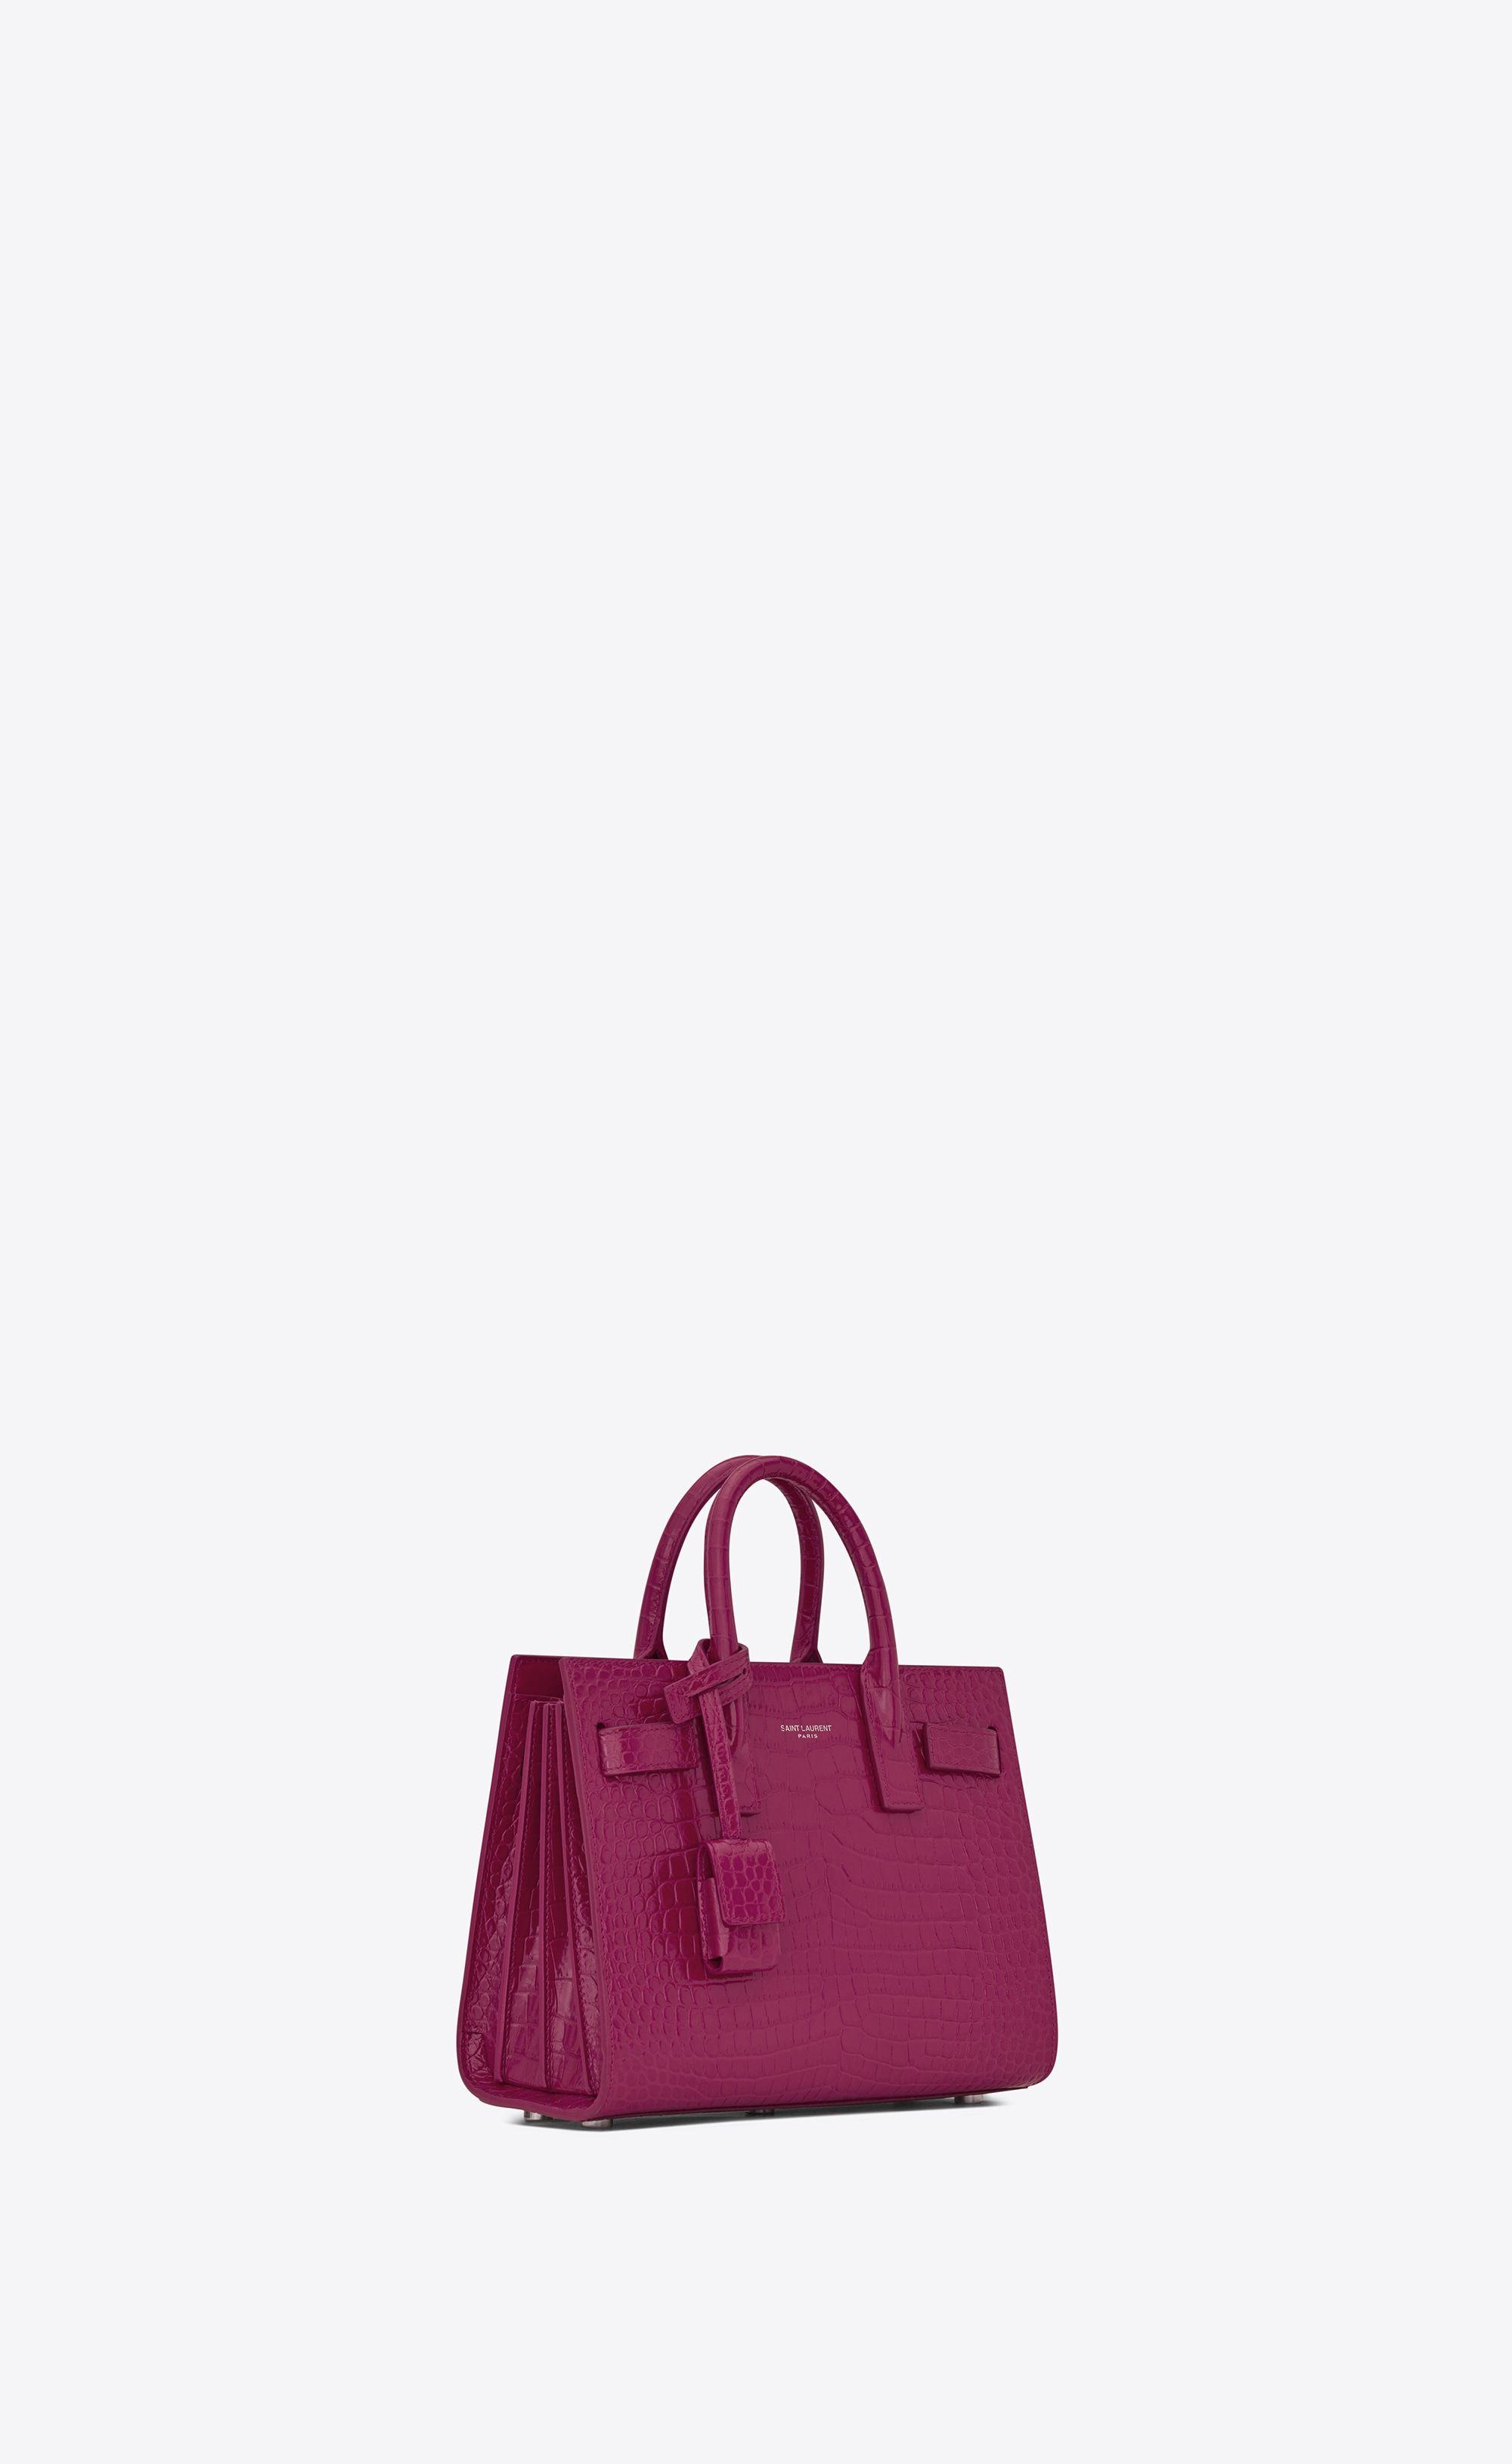 759b0eed Classic sac de jour nano in embossed crocodile shiny leather | BAGS ...